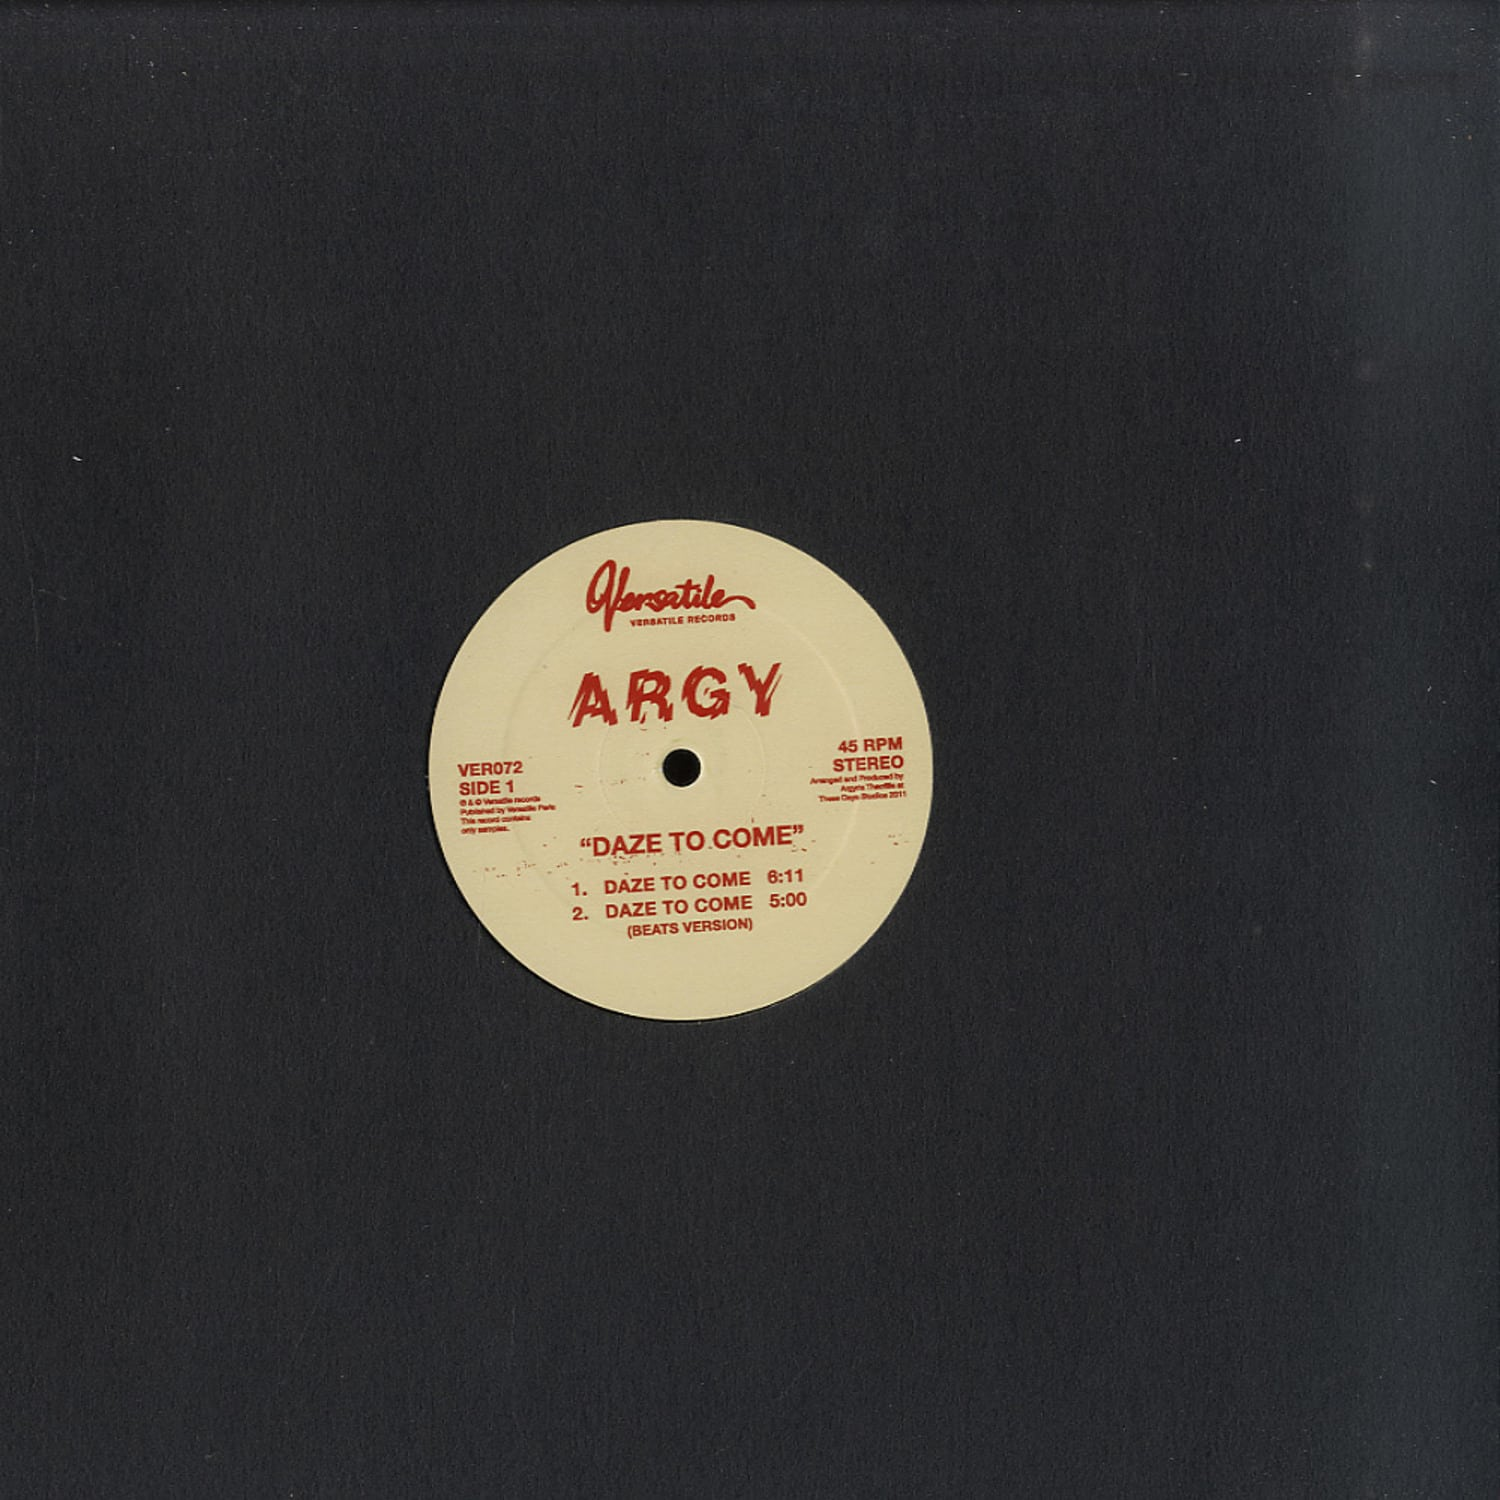 ARGY - DAZE TO COME TO DIFFERENCE